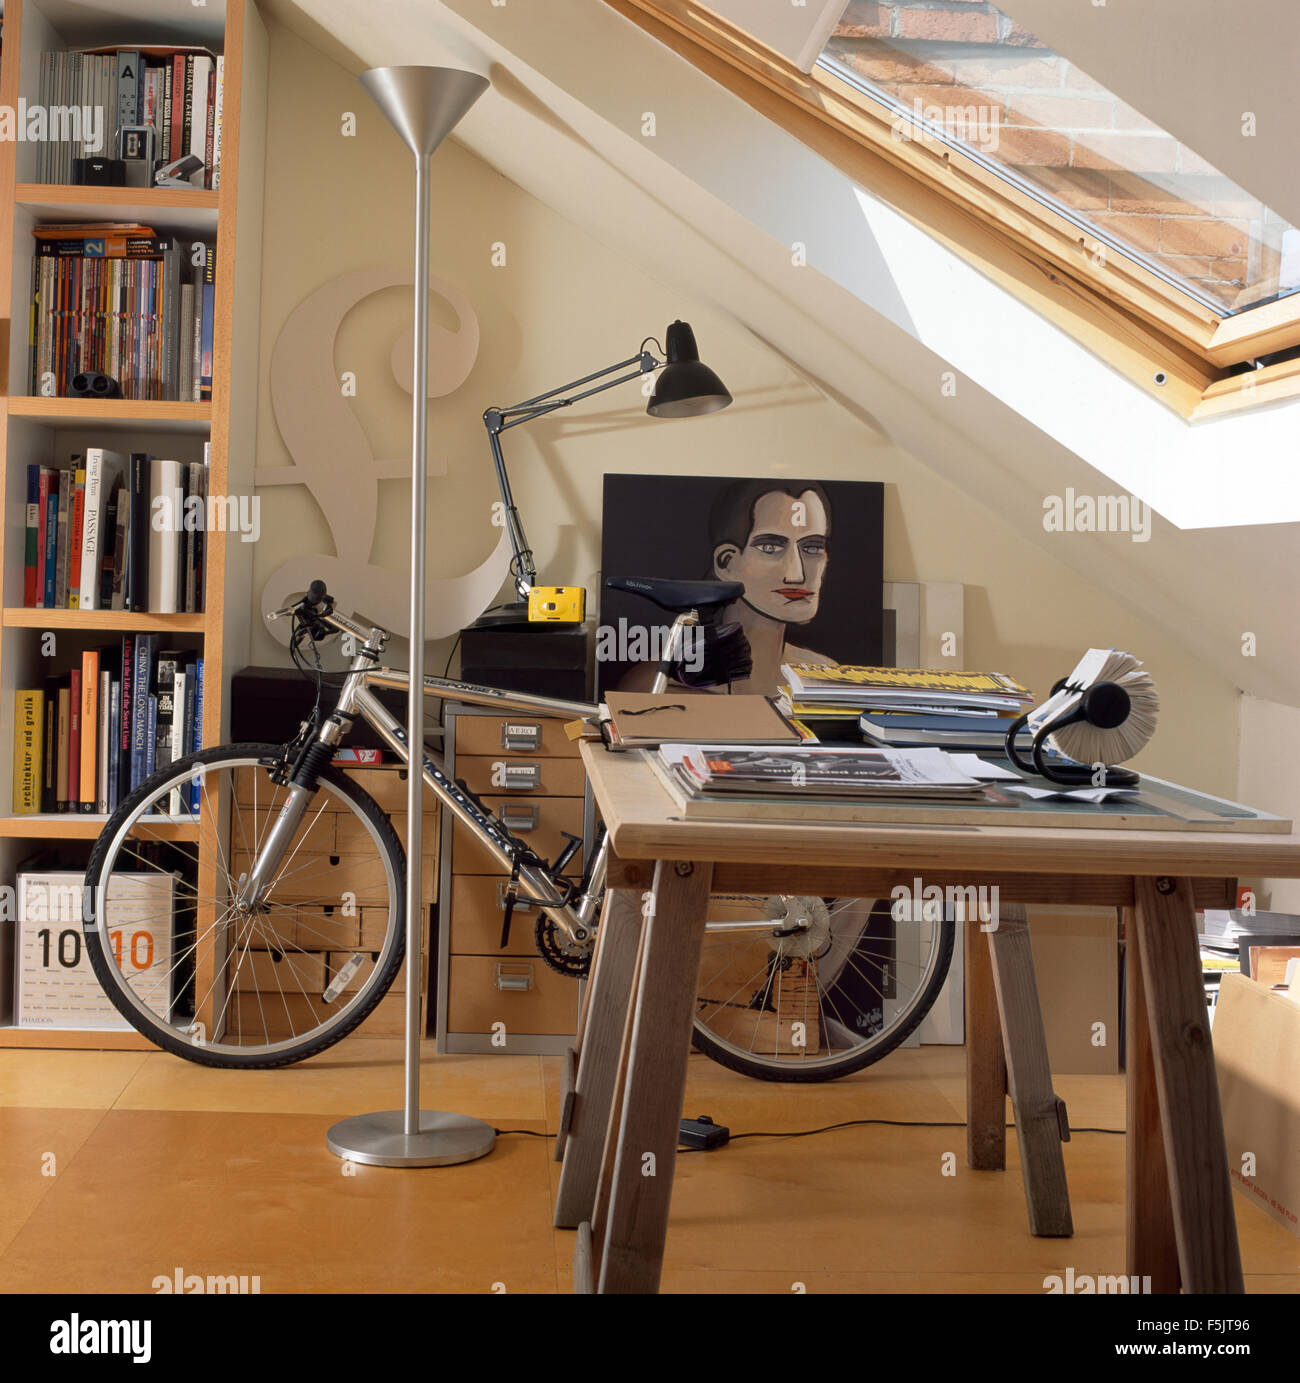 Bicycle and tall chrome floor lamp in attic study - Stock Image